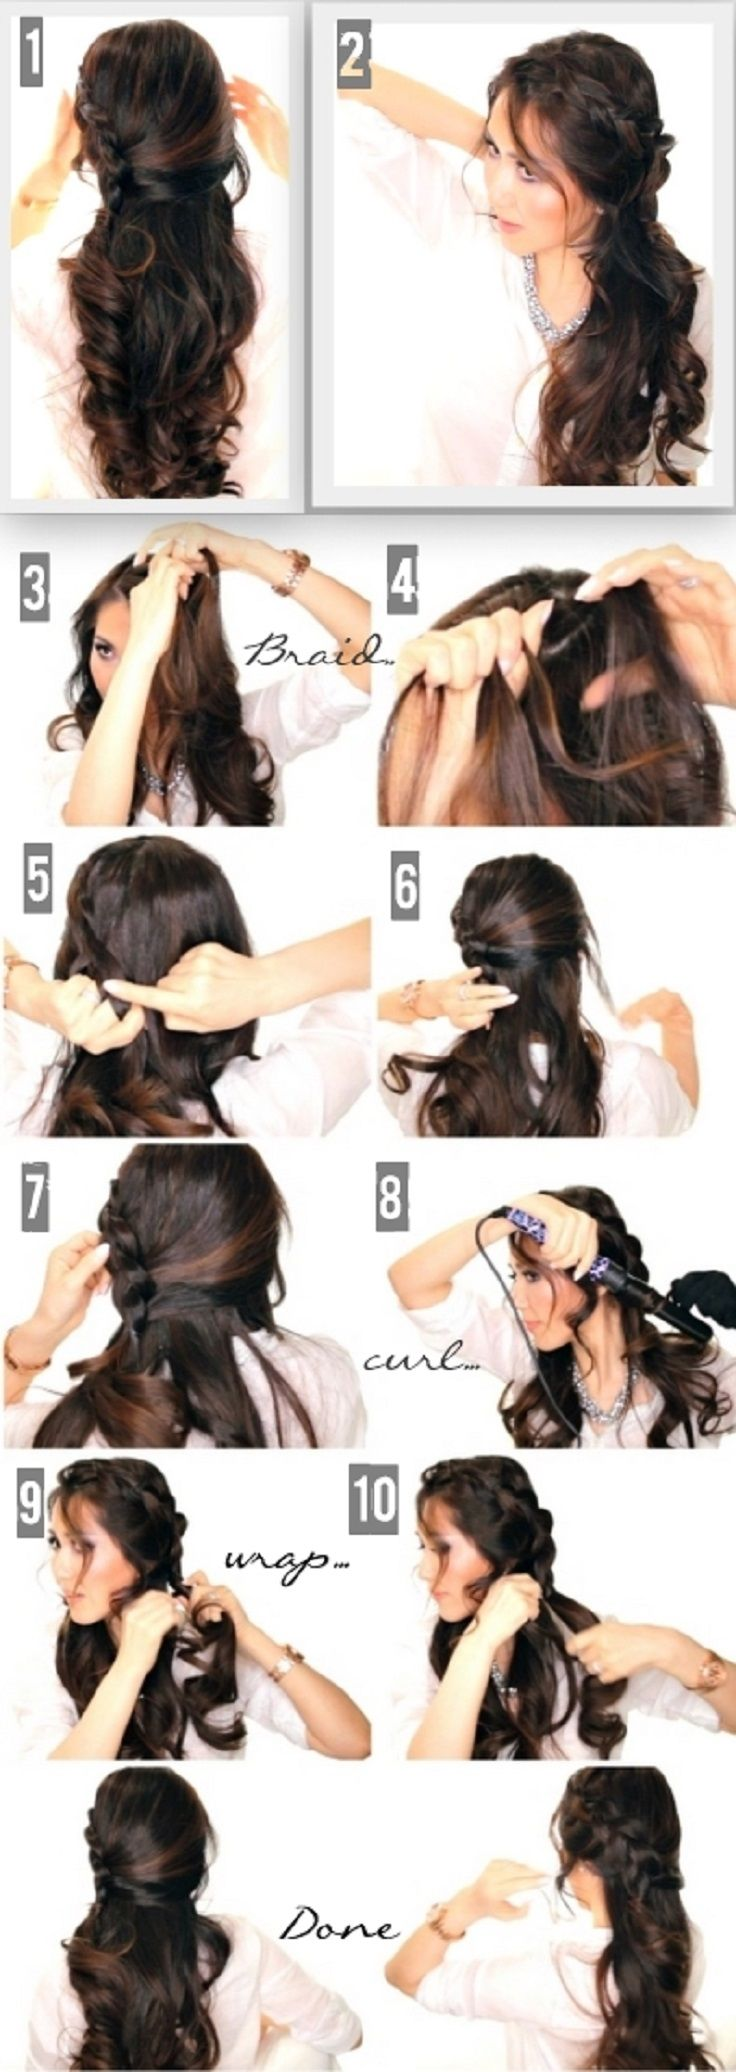 Top 10 Half Up Half Down Hair Tutorials You Must Have #hair #hairstyles #hairdo #popular